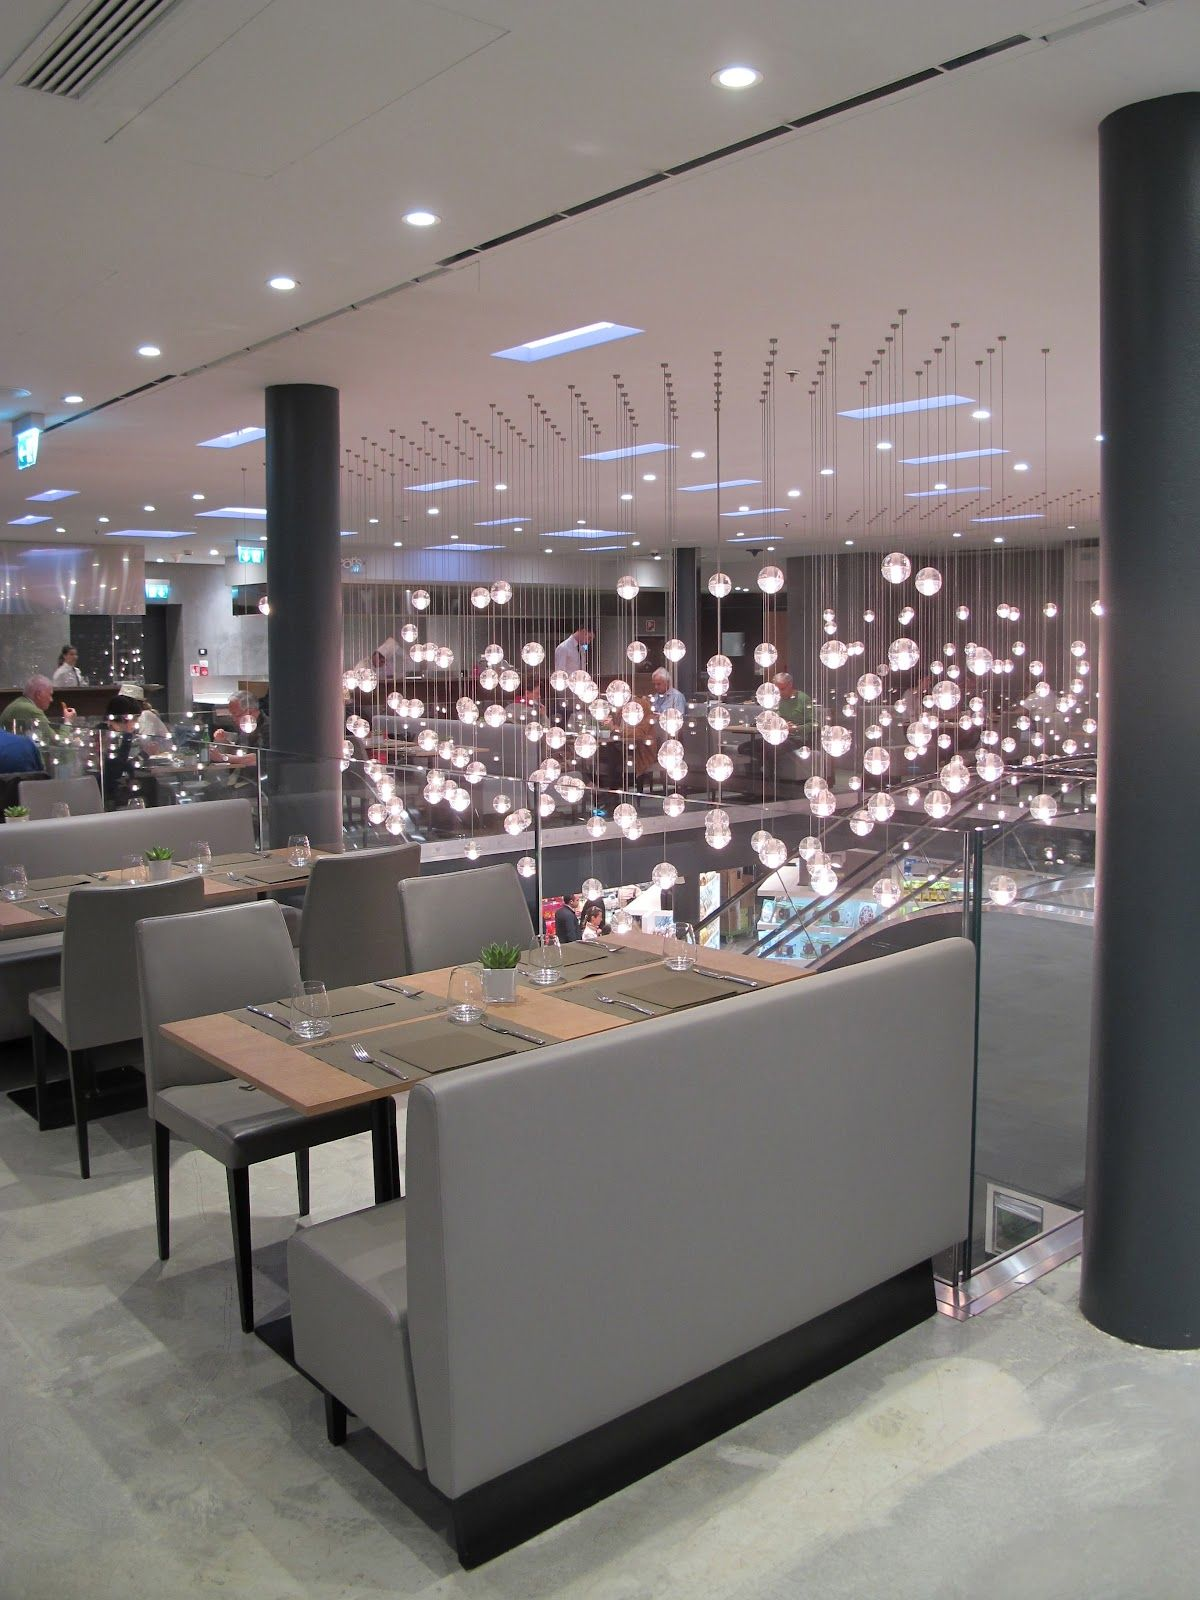 Eat 39 s bistro and food market at excelsior milan italy for Unique design milano